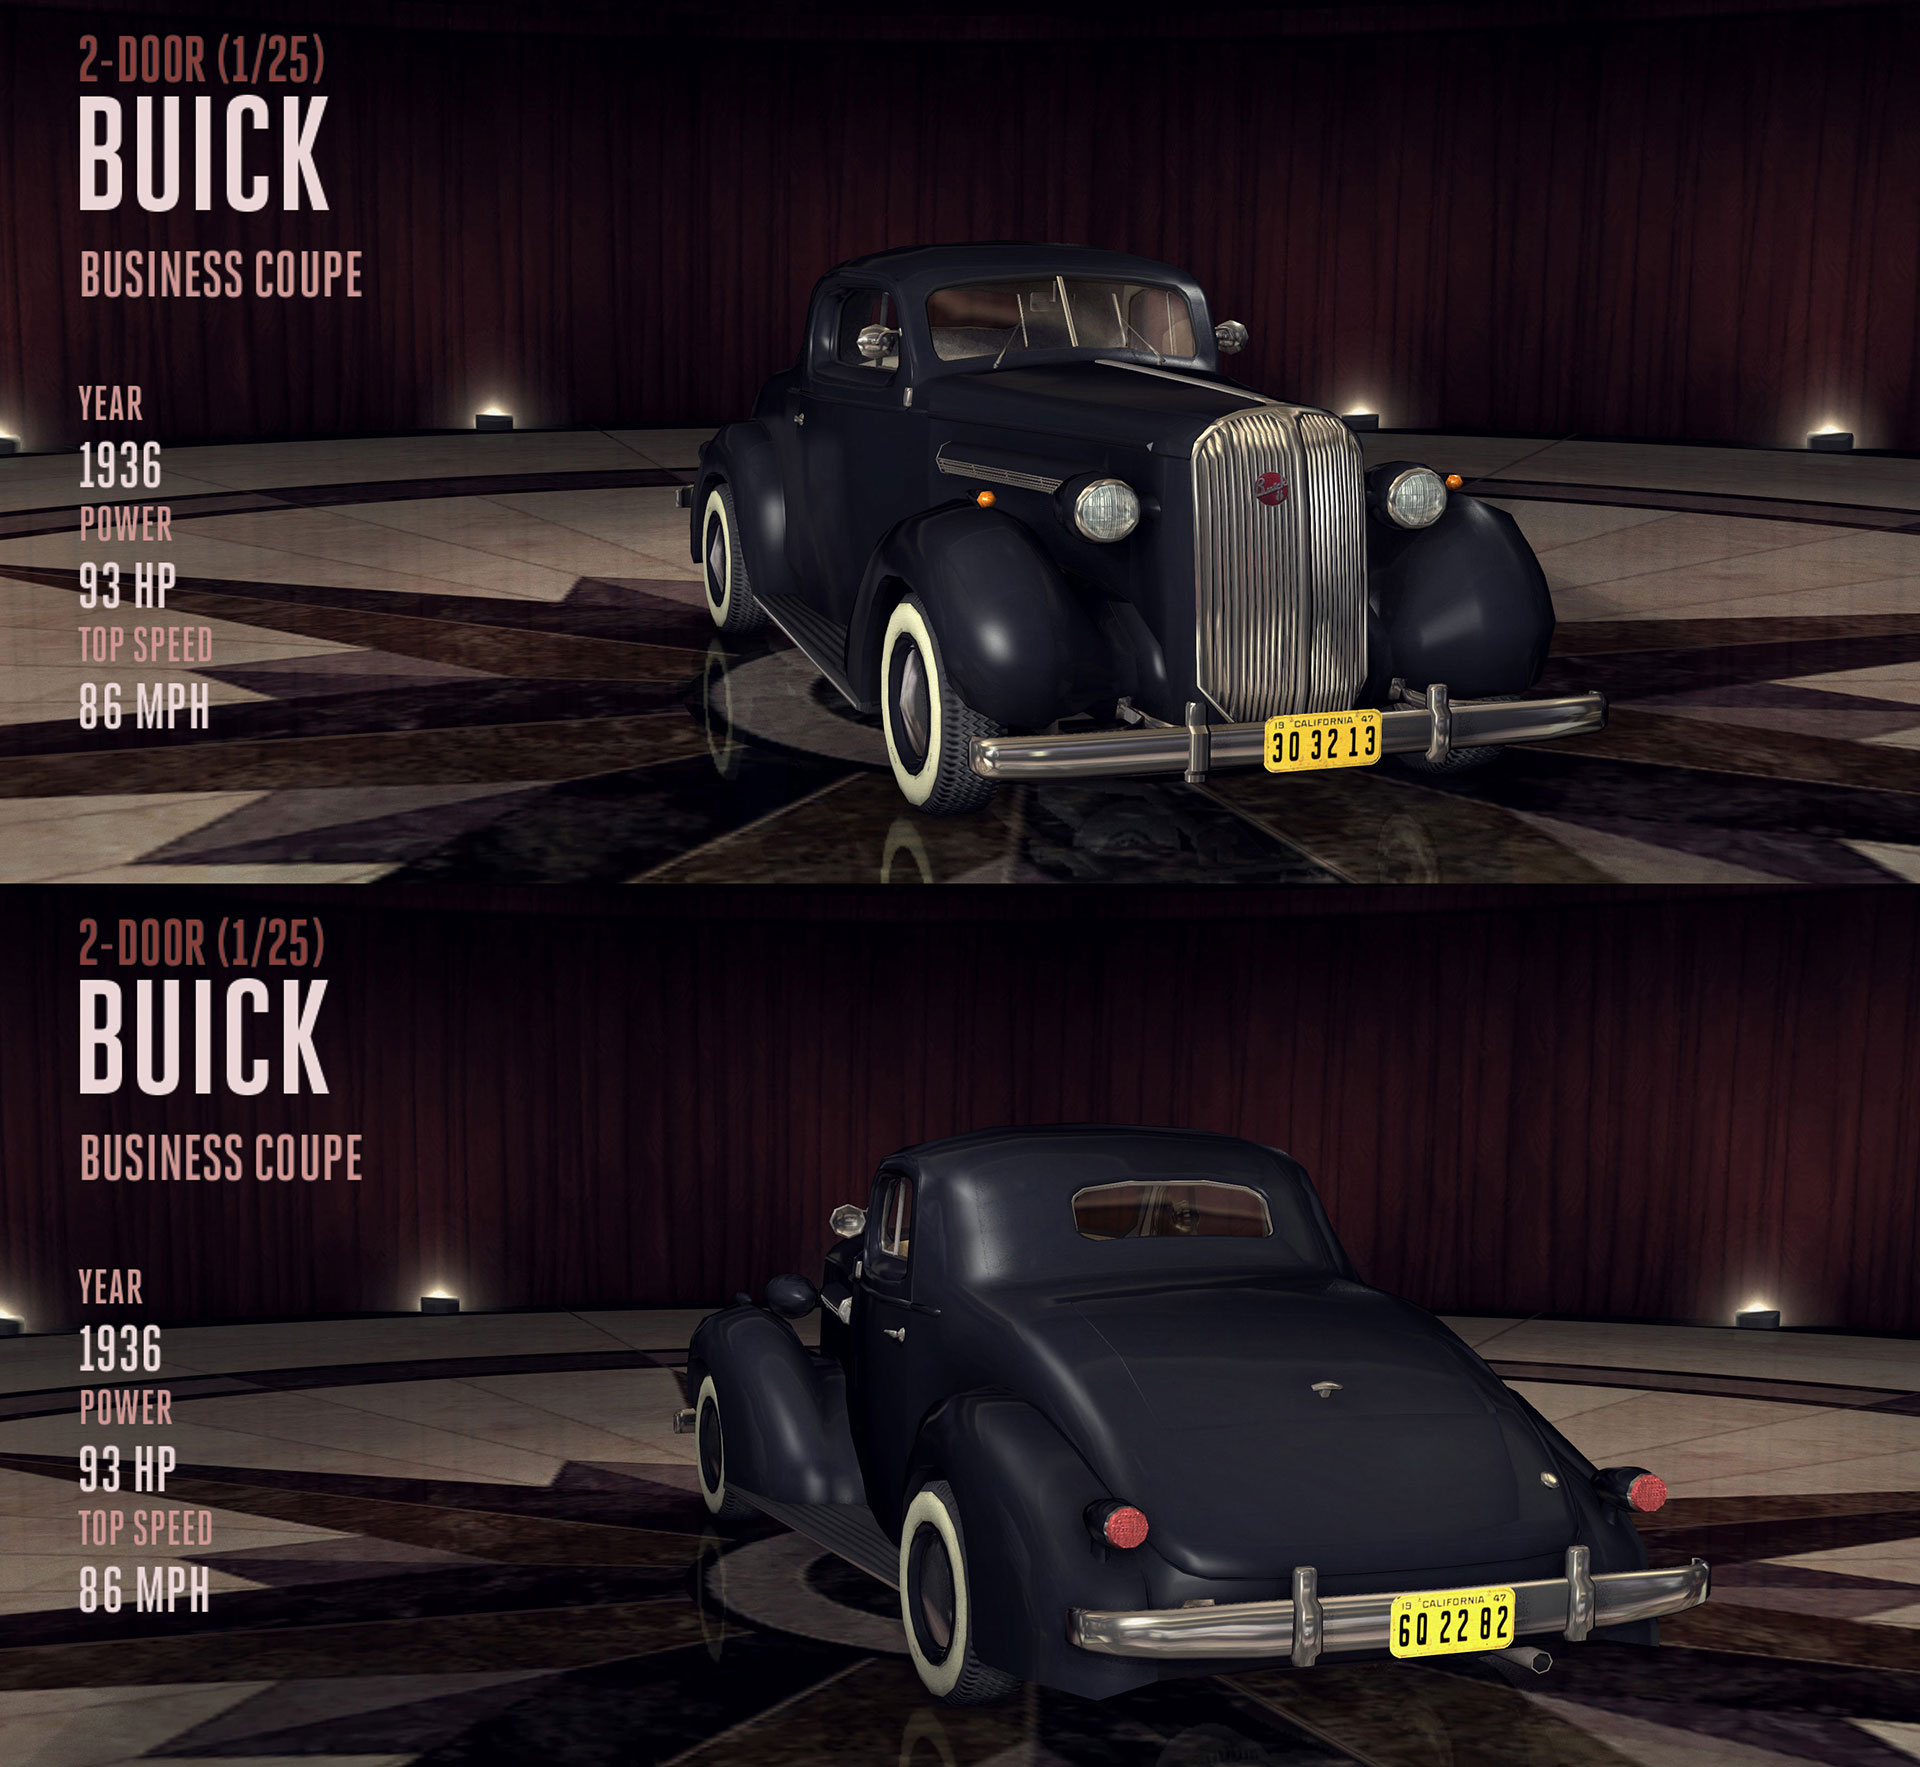 Fichier:1936-buick-business-coupe.jpg